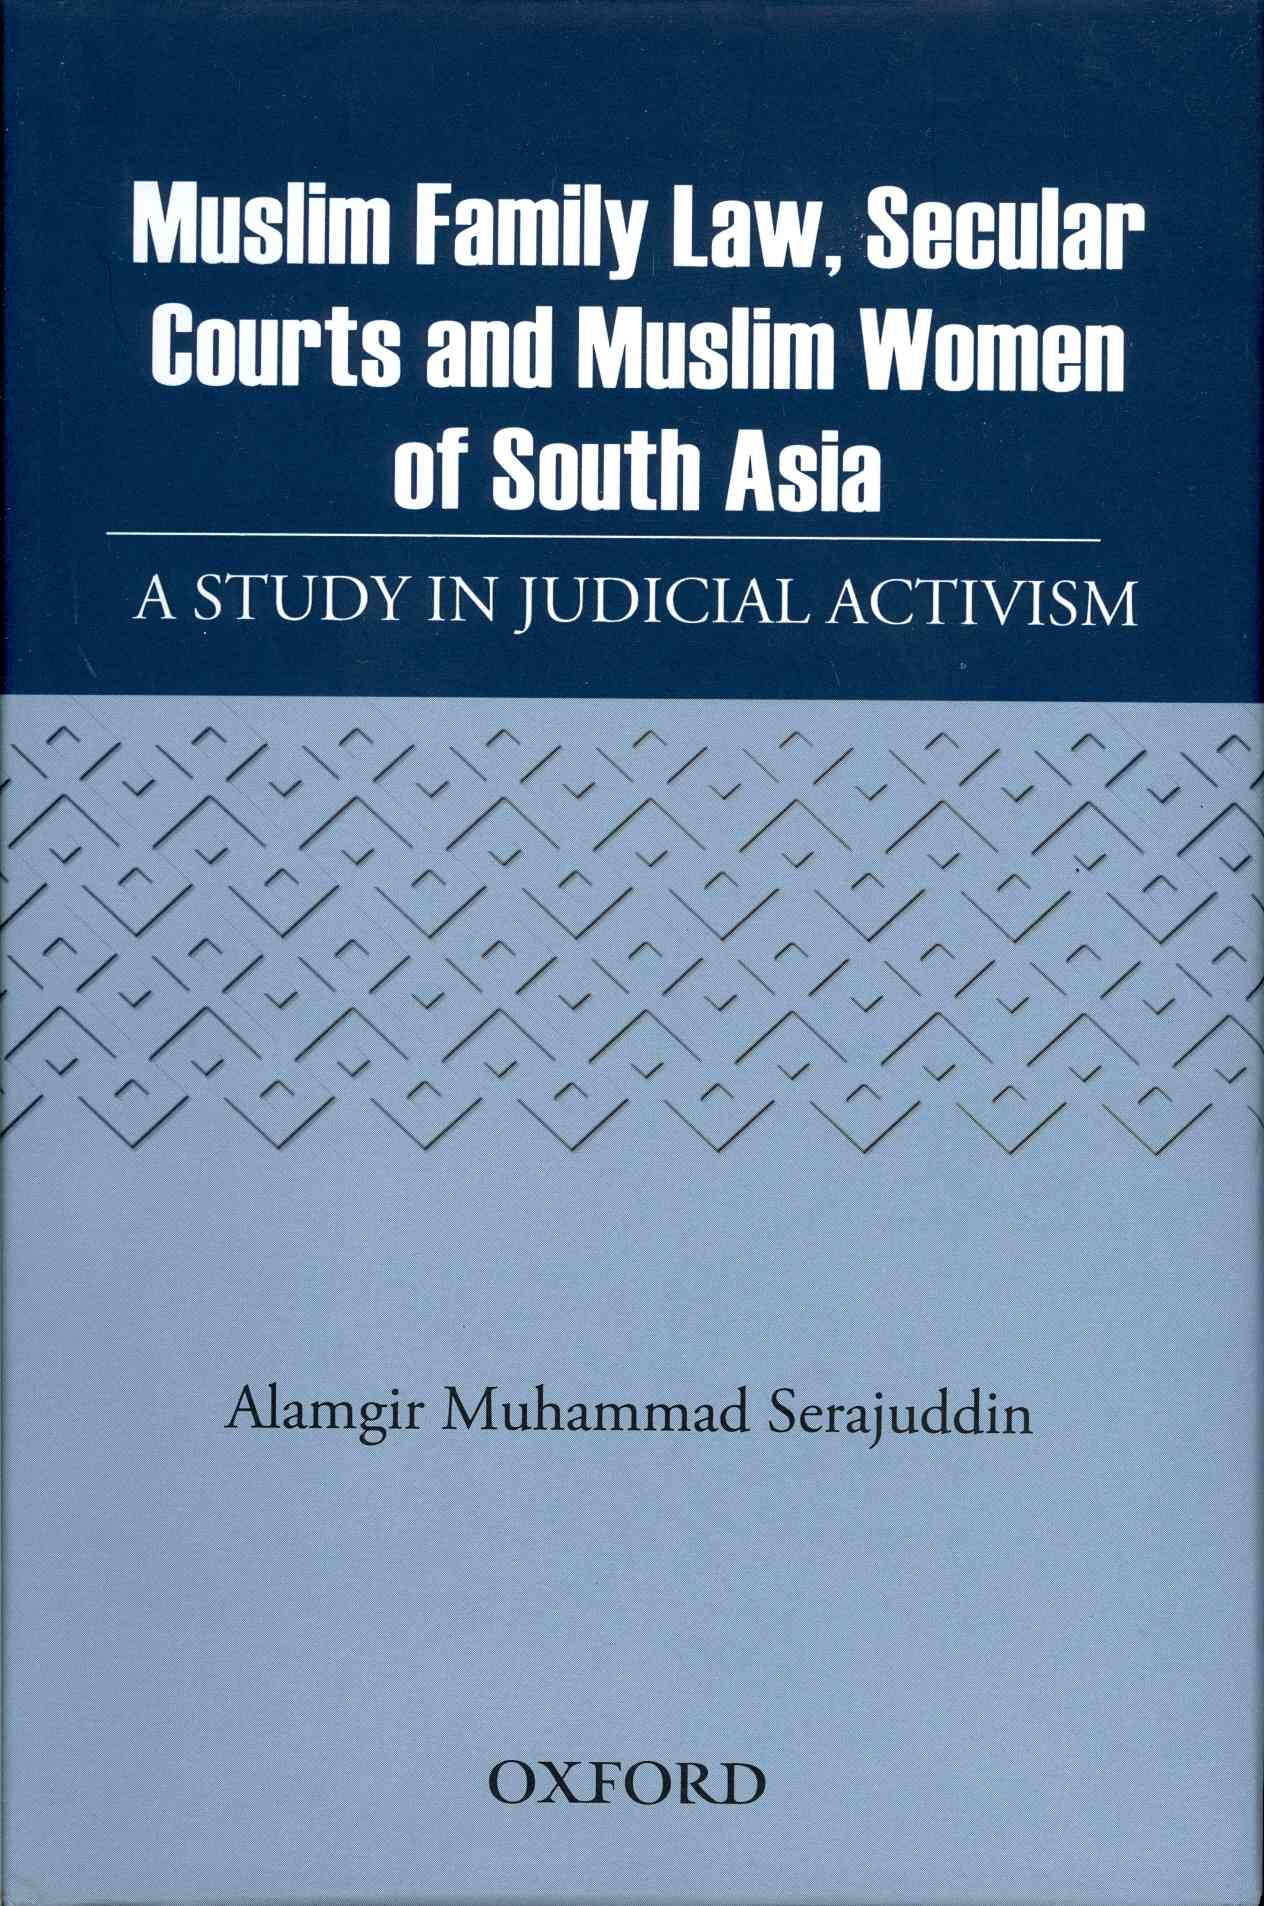 Muslim Family Law, Secular Courts and Muslim Women of South Asia: A Study in Judicial Activism (Hardcover)